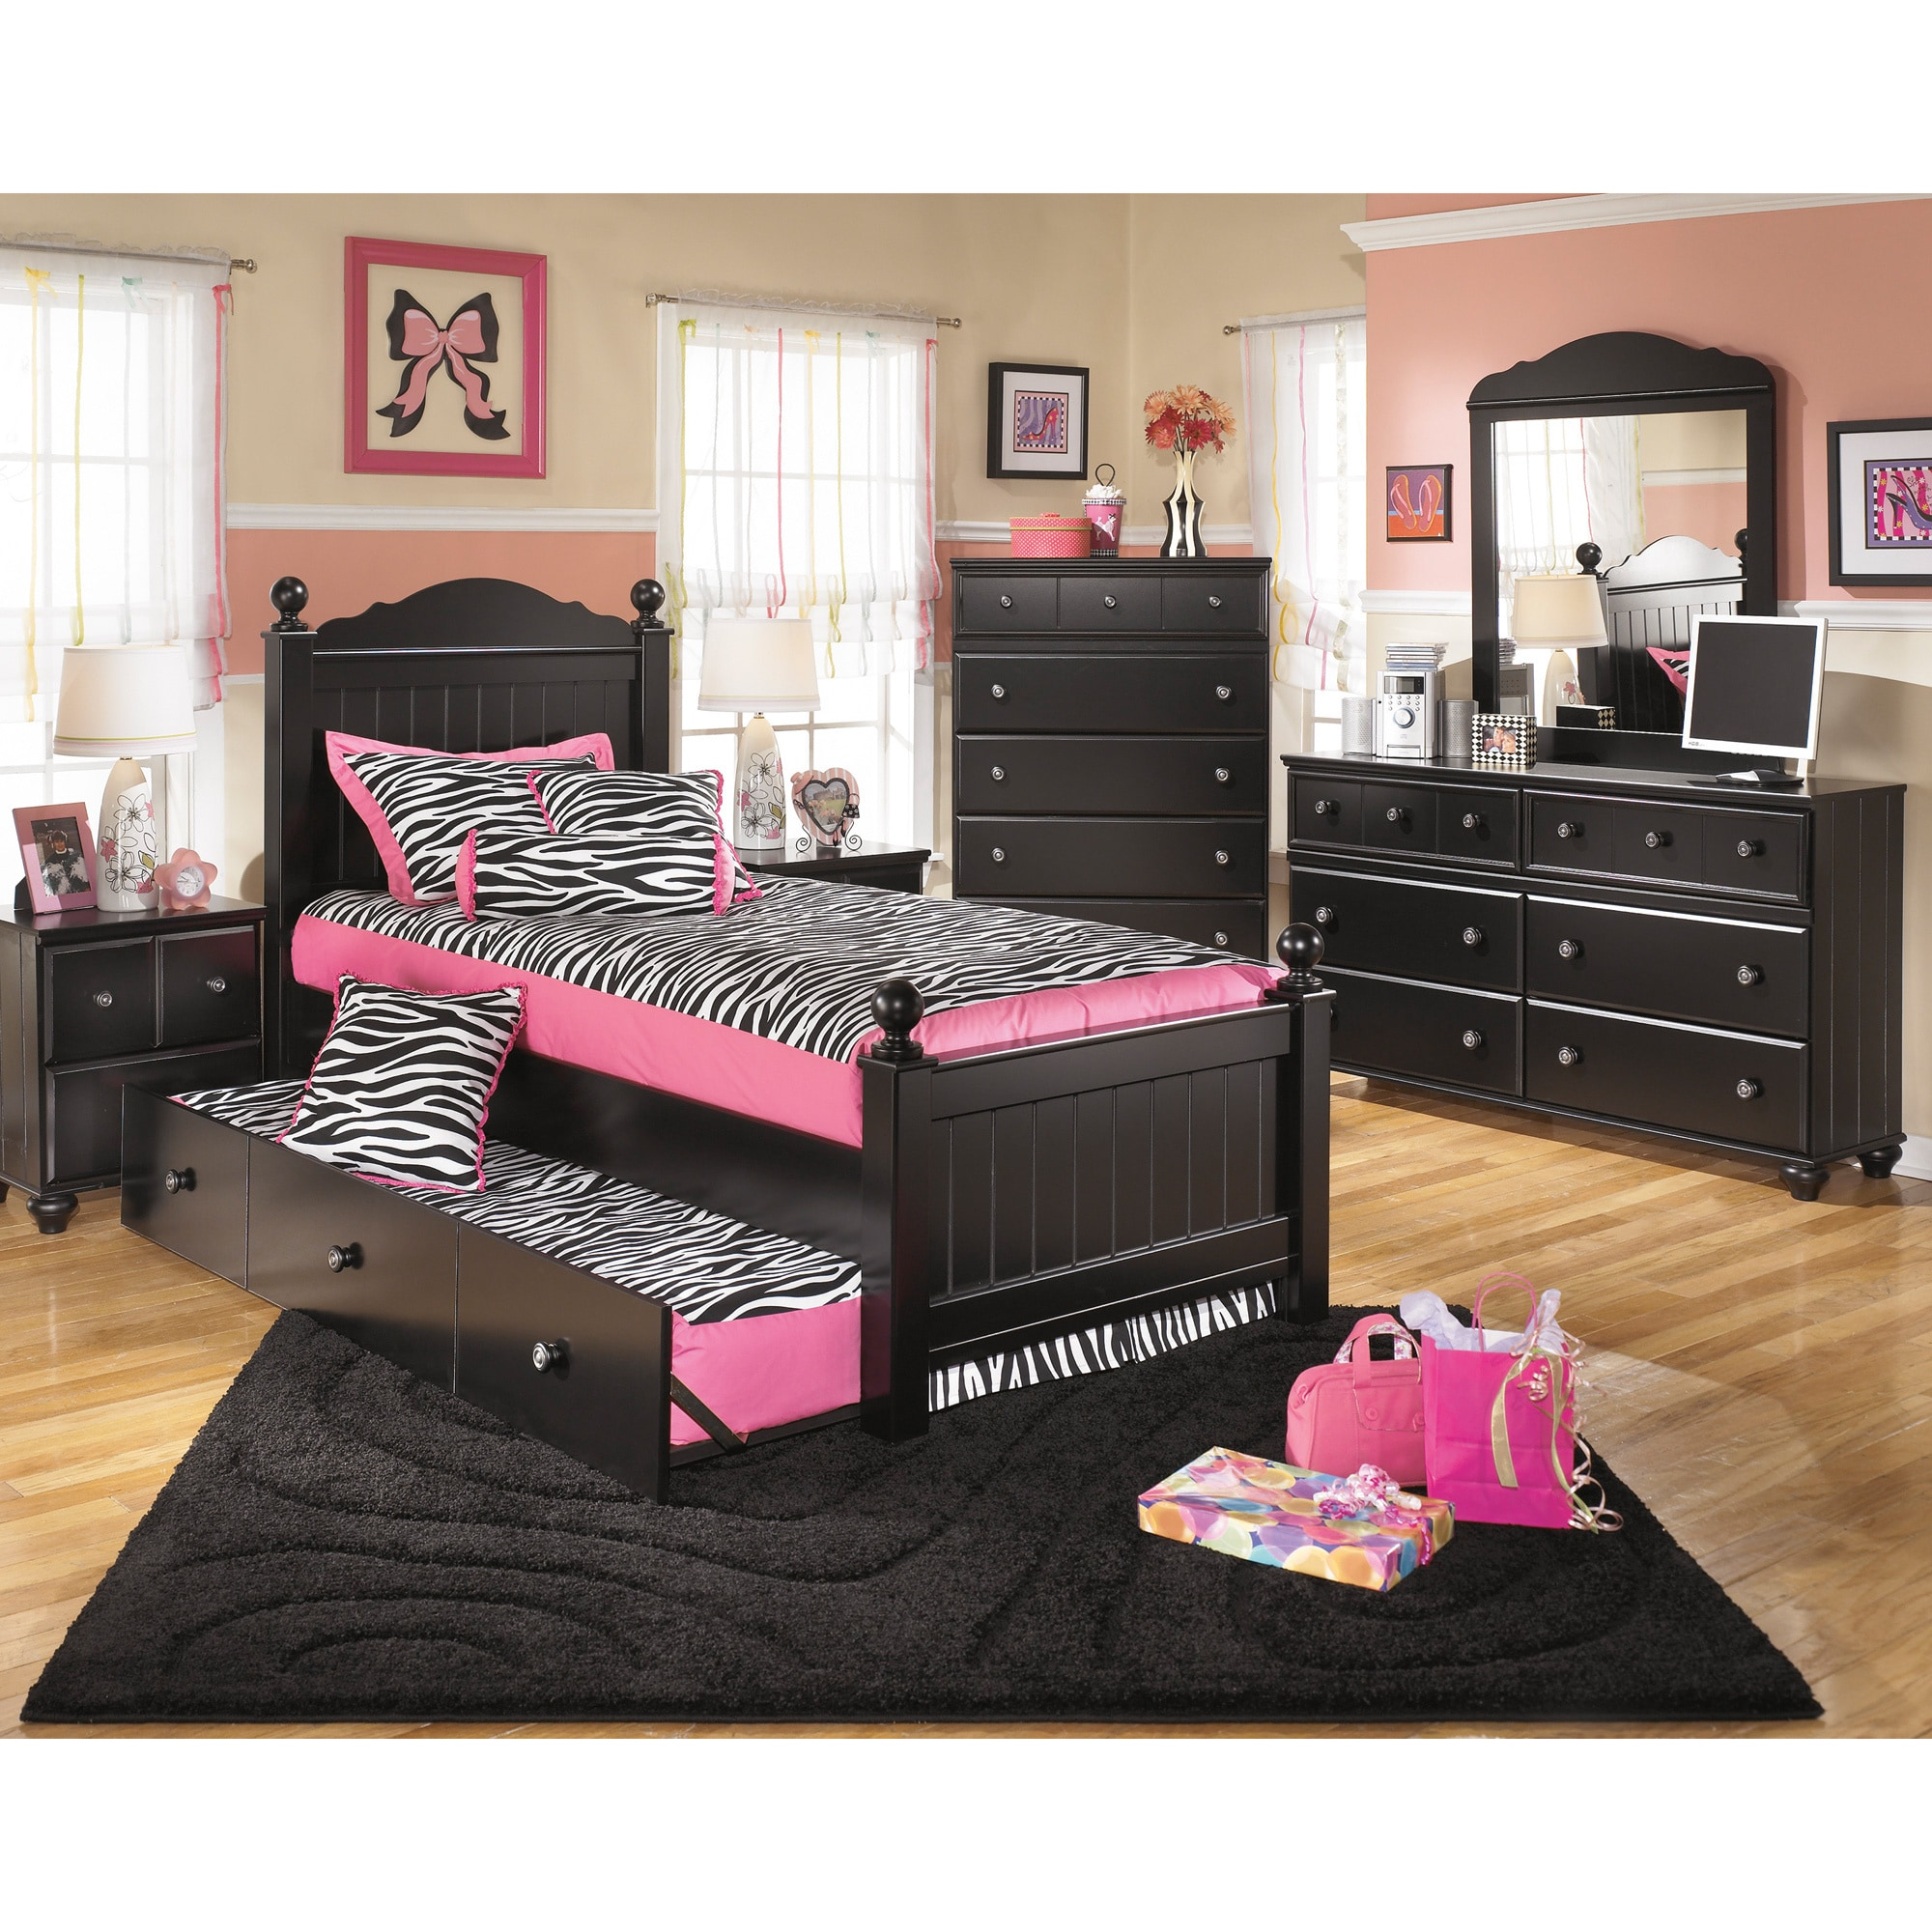 Signature Design by Ashley Jaidyn Black Poster Bed Set with Trundle ...